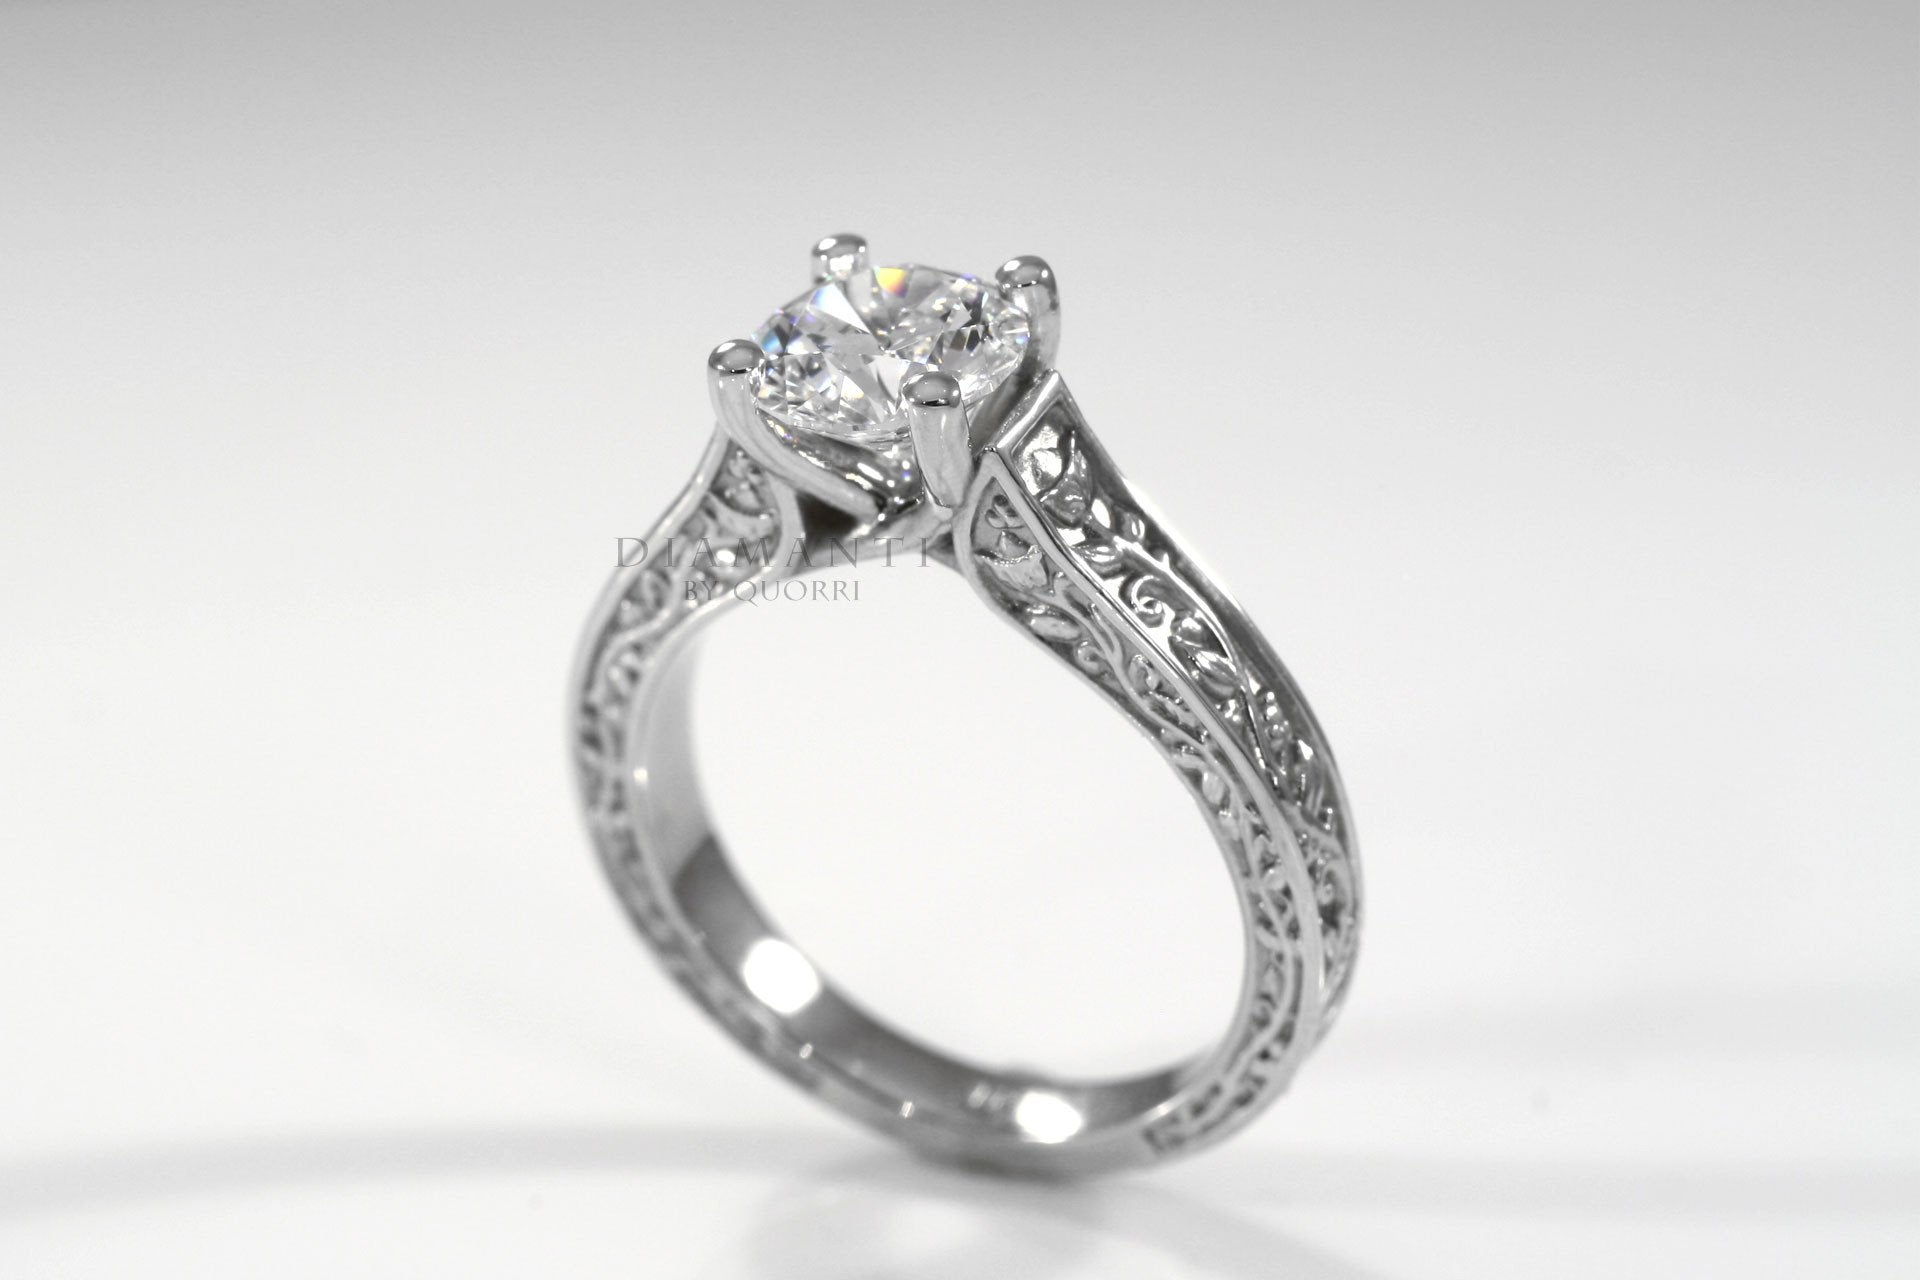 cheap antique round lab diamond engagement rings in canada by quorri reviews